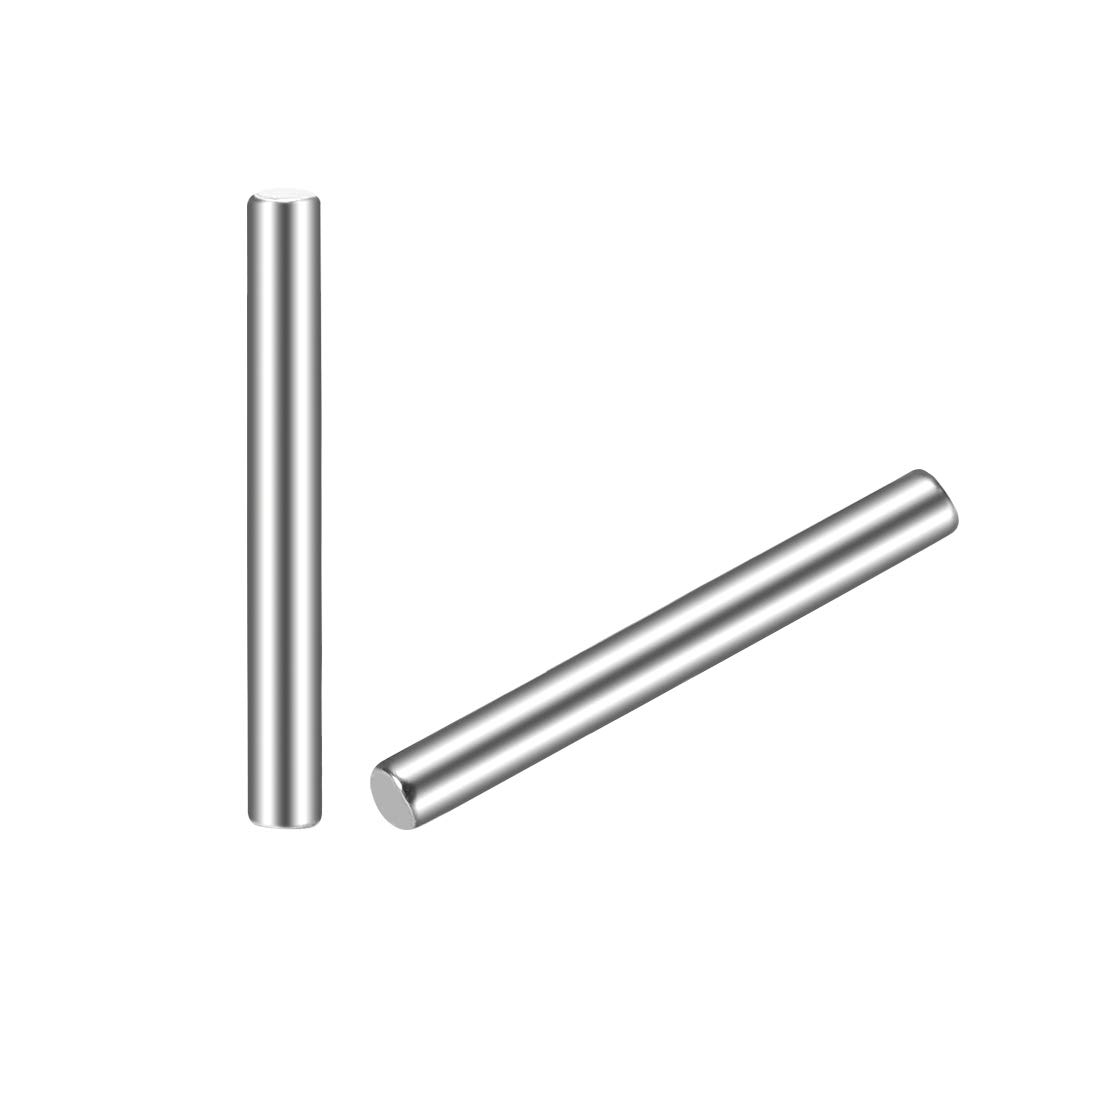 uxcell 2 x 18mm(Approx 5/64) Dowel Pin 304 Stainless Steel Wood Bunk Bed Dowel Pins Shelf Pegs Support Shelves 20Pcs